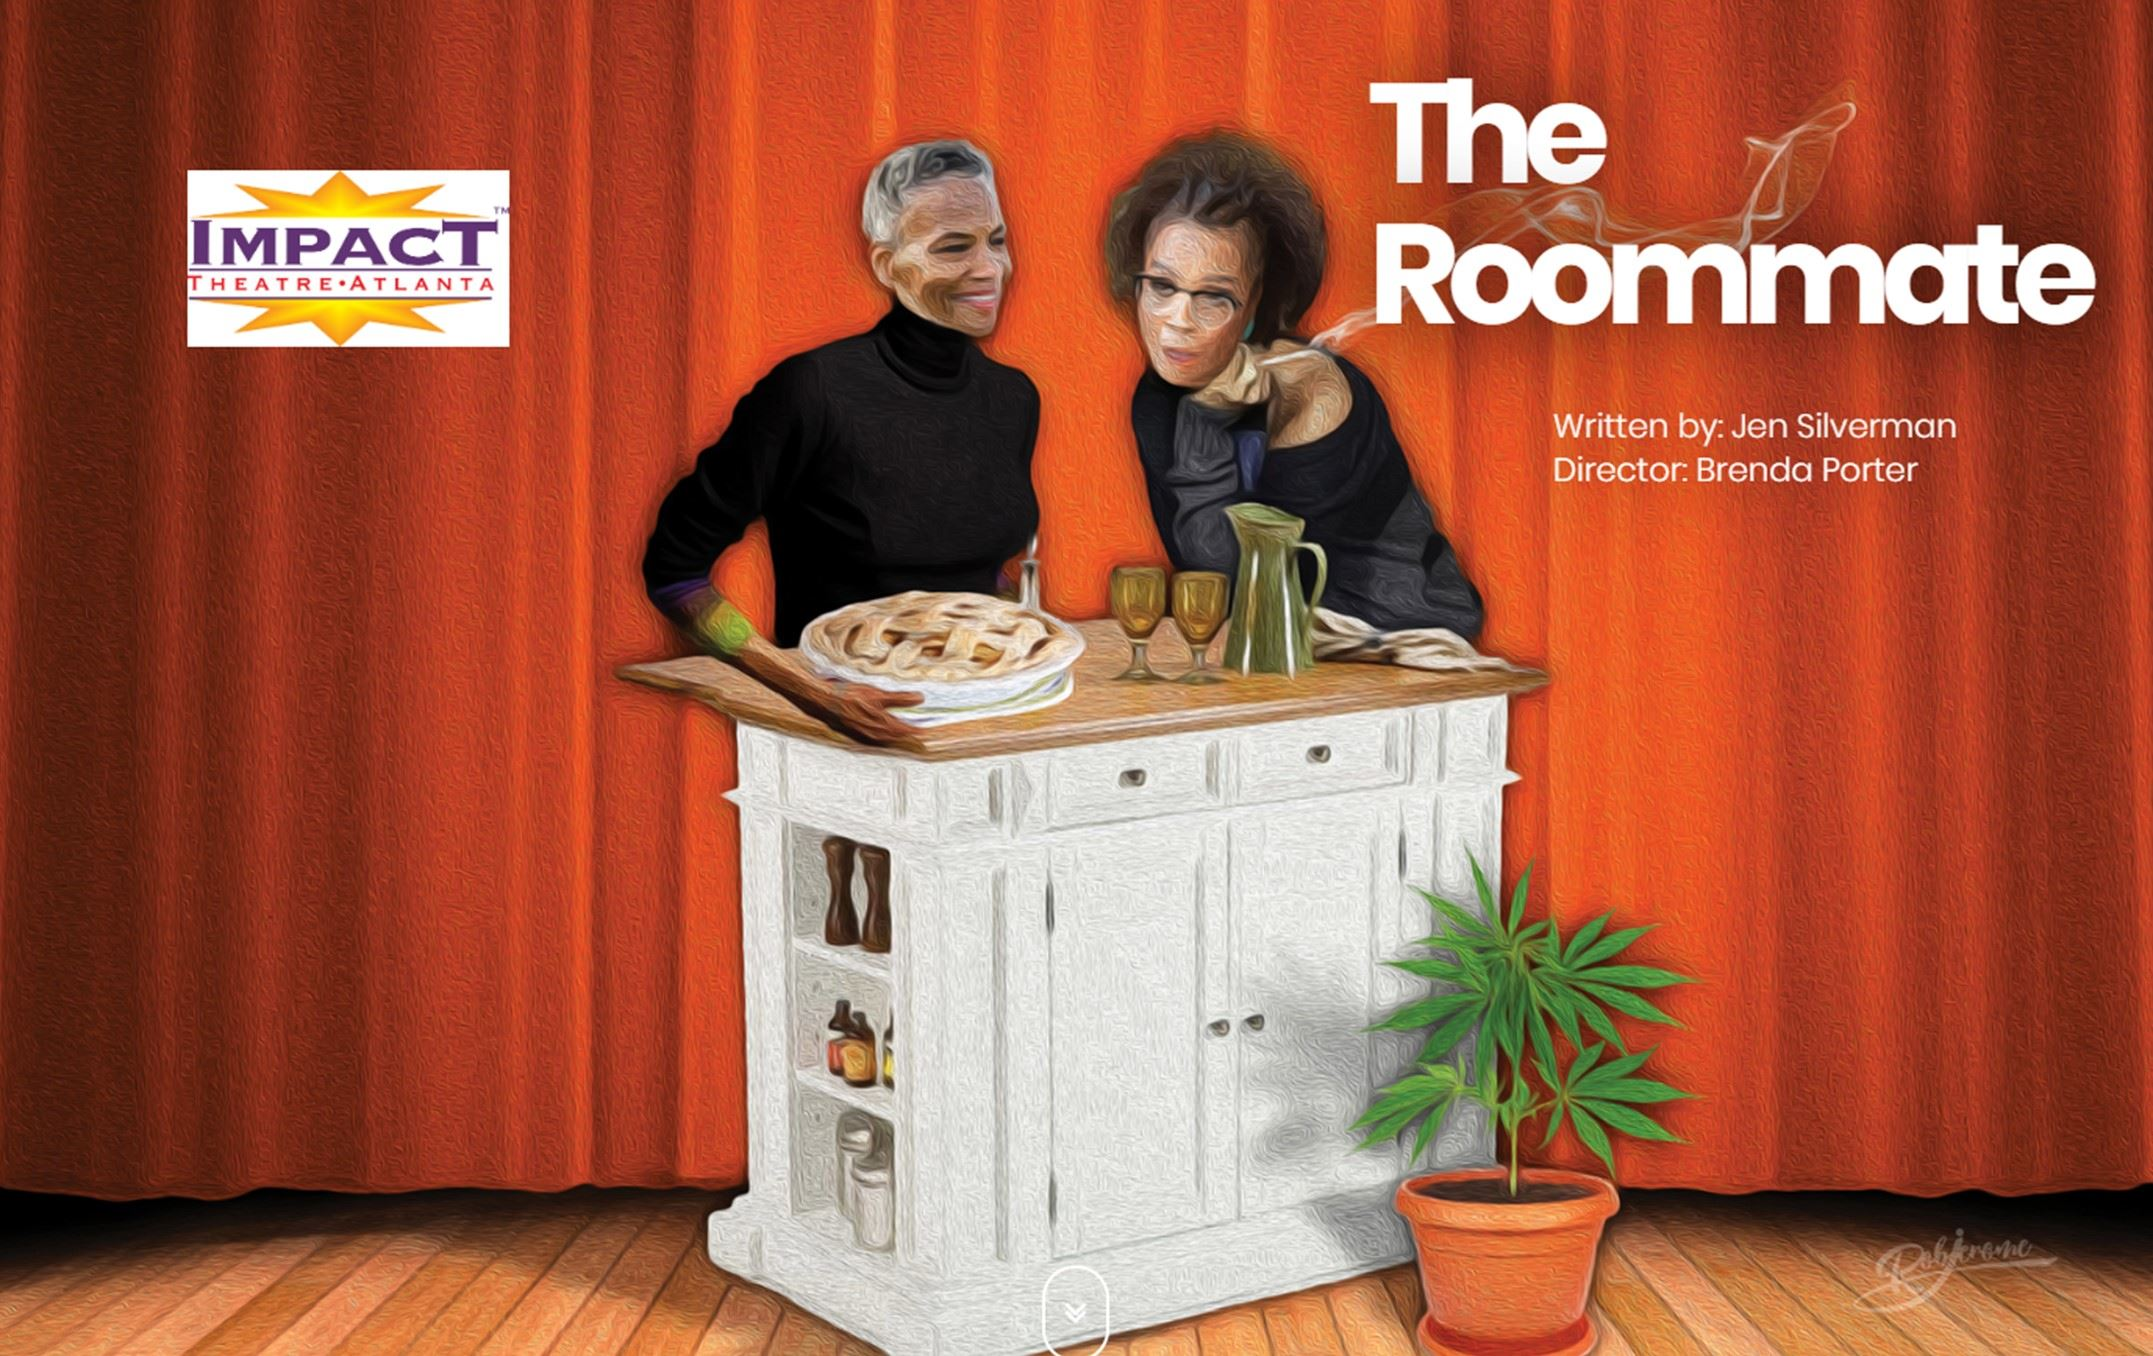 Poster for The Roommate Play presented by Impact Theatre